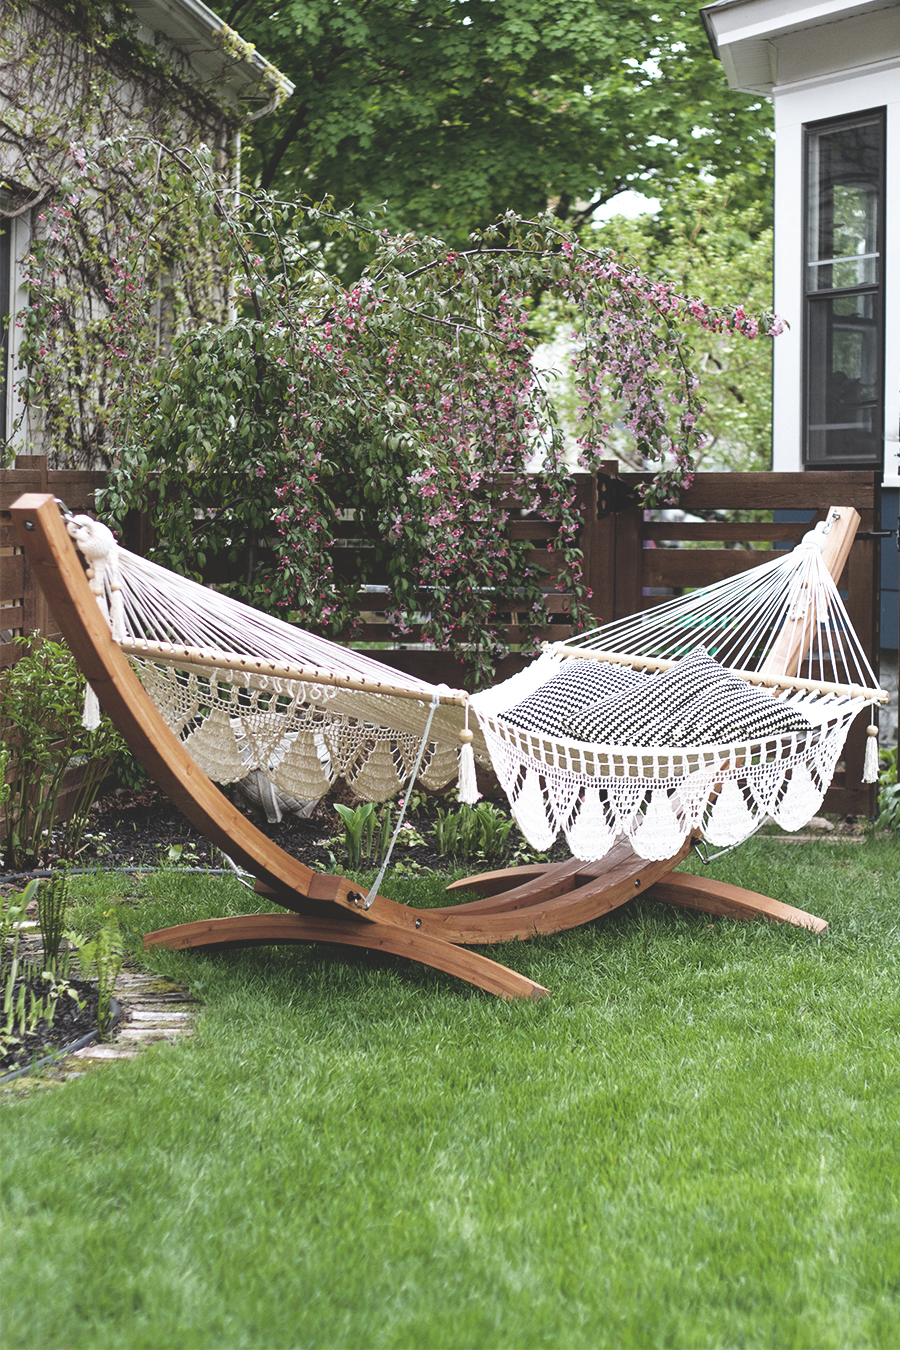 Backyard Hammock - Deuce Cities Henhouse